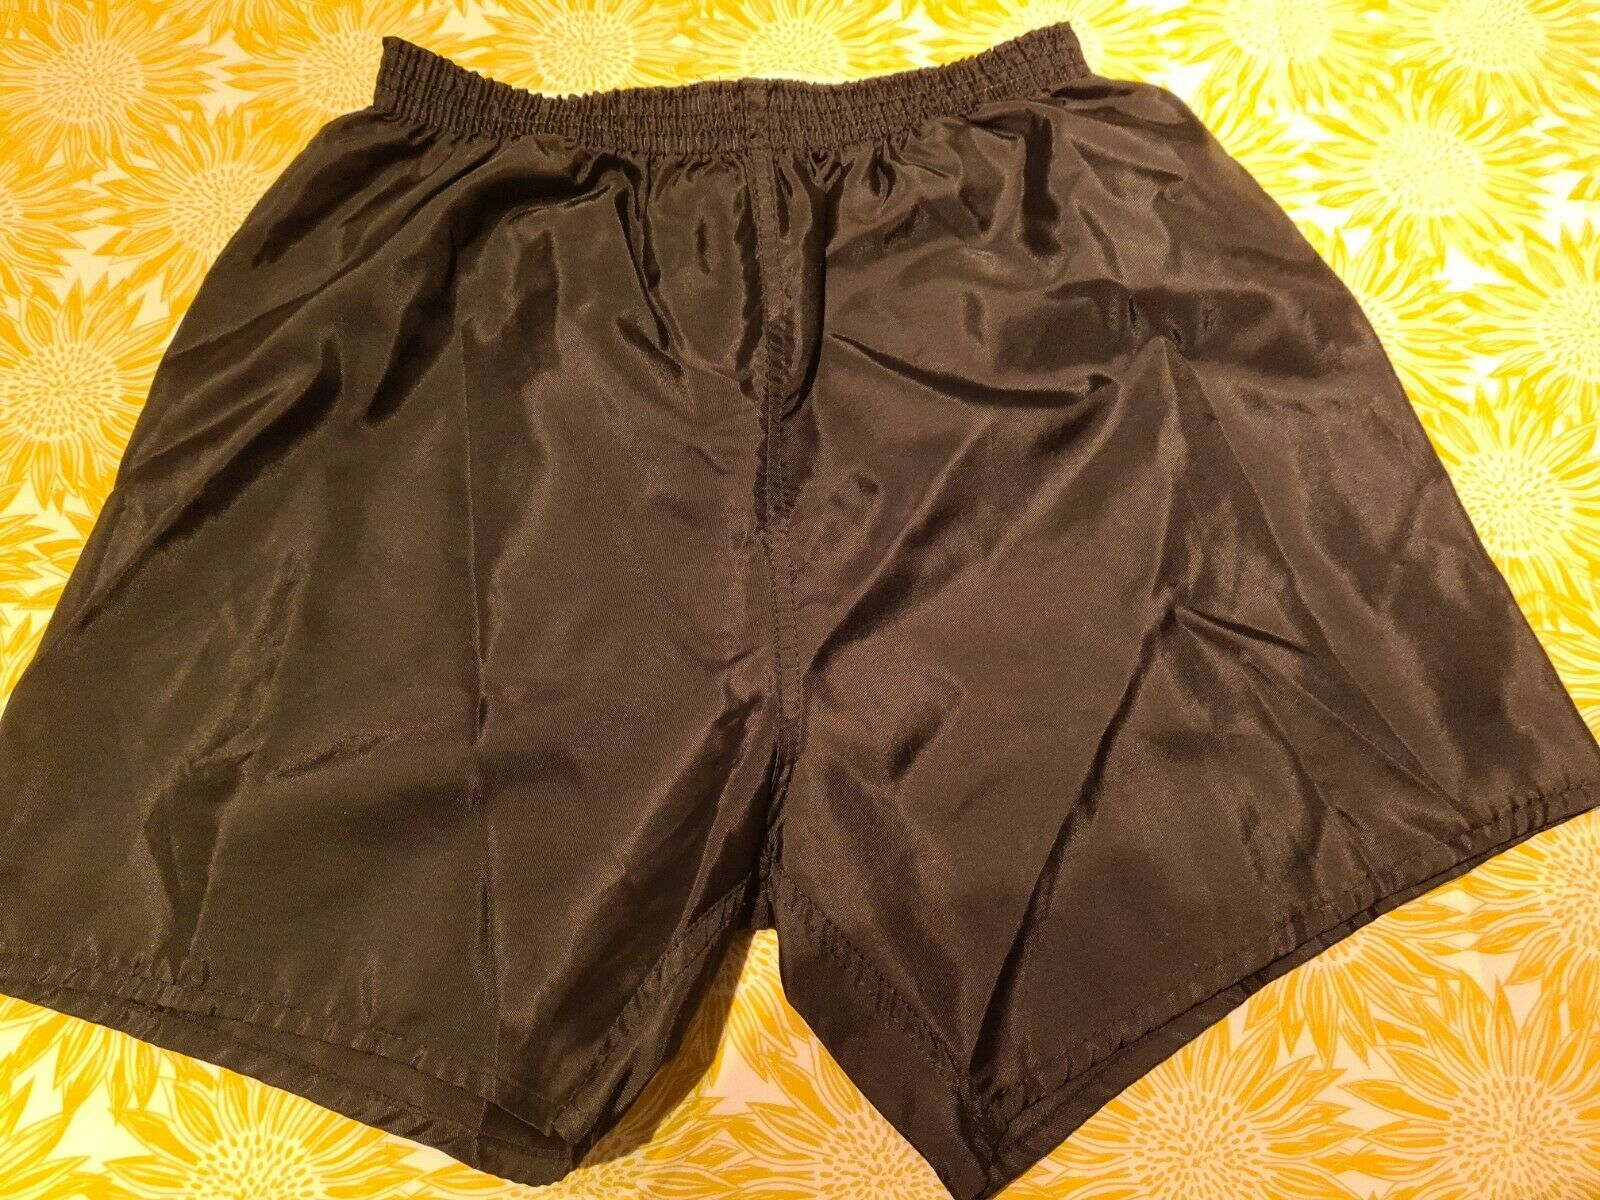 Nylon Vintage School Sports Shorts Size 34in 86cm Black